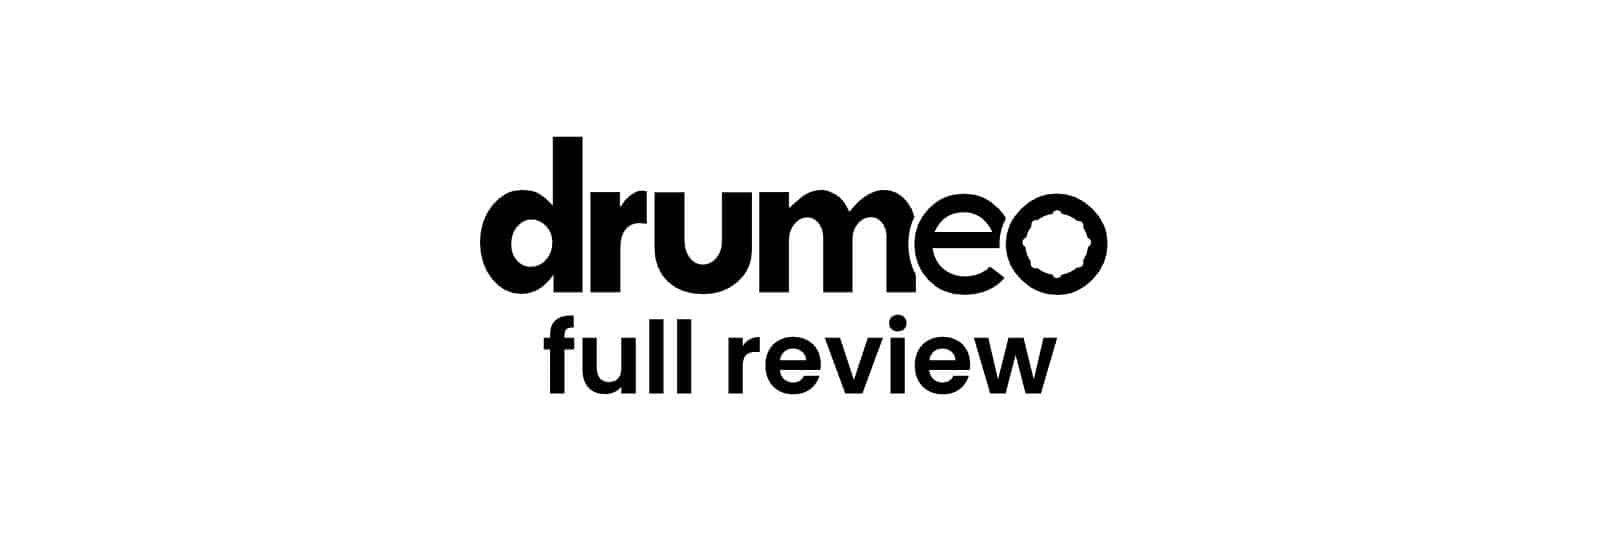 drumeo-review